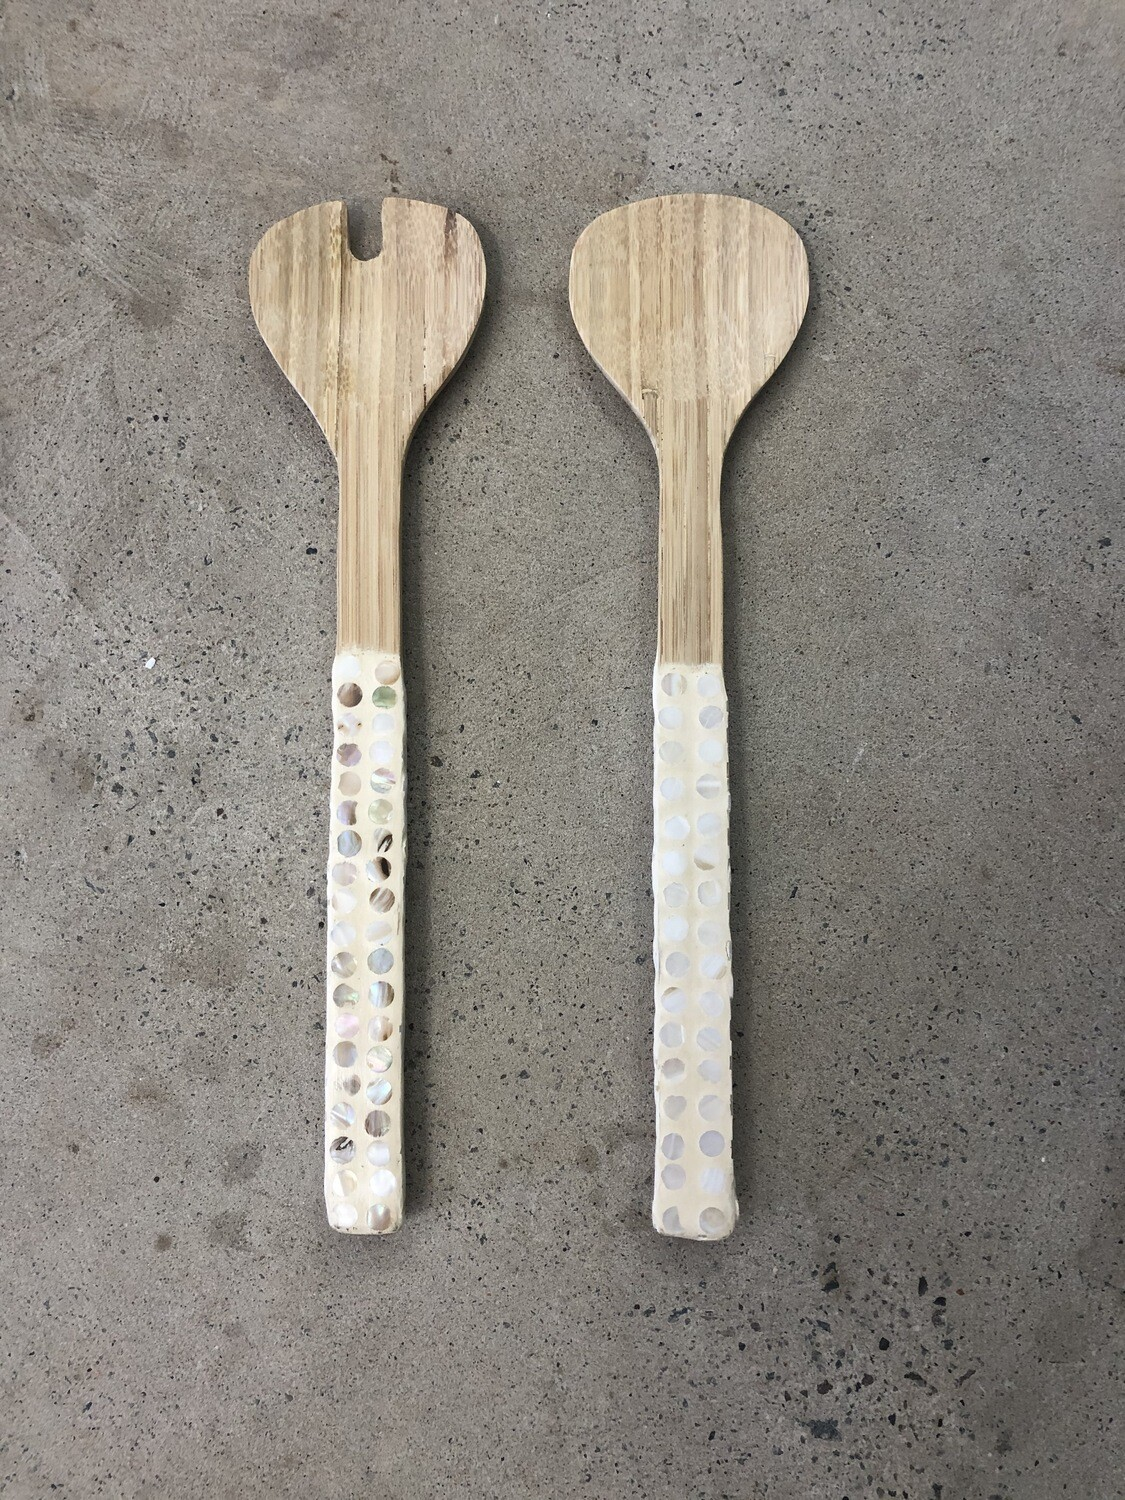 Bamboo Servers Set of 2 with Mother of Pearl Capiz Shell